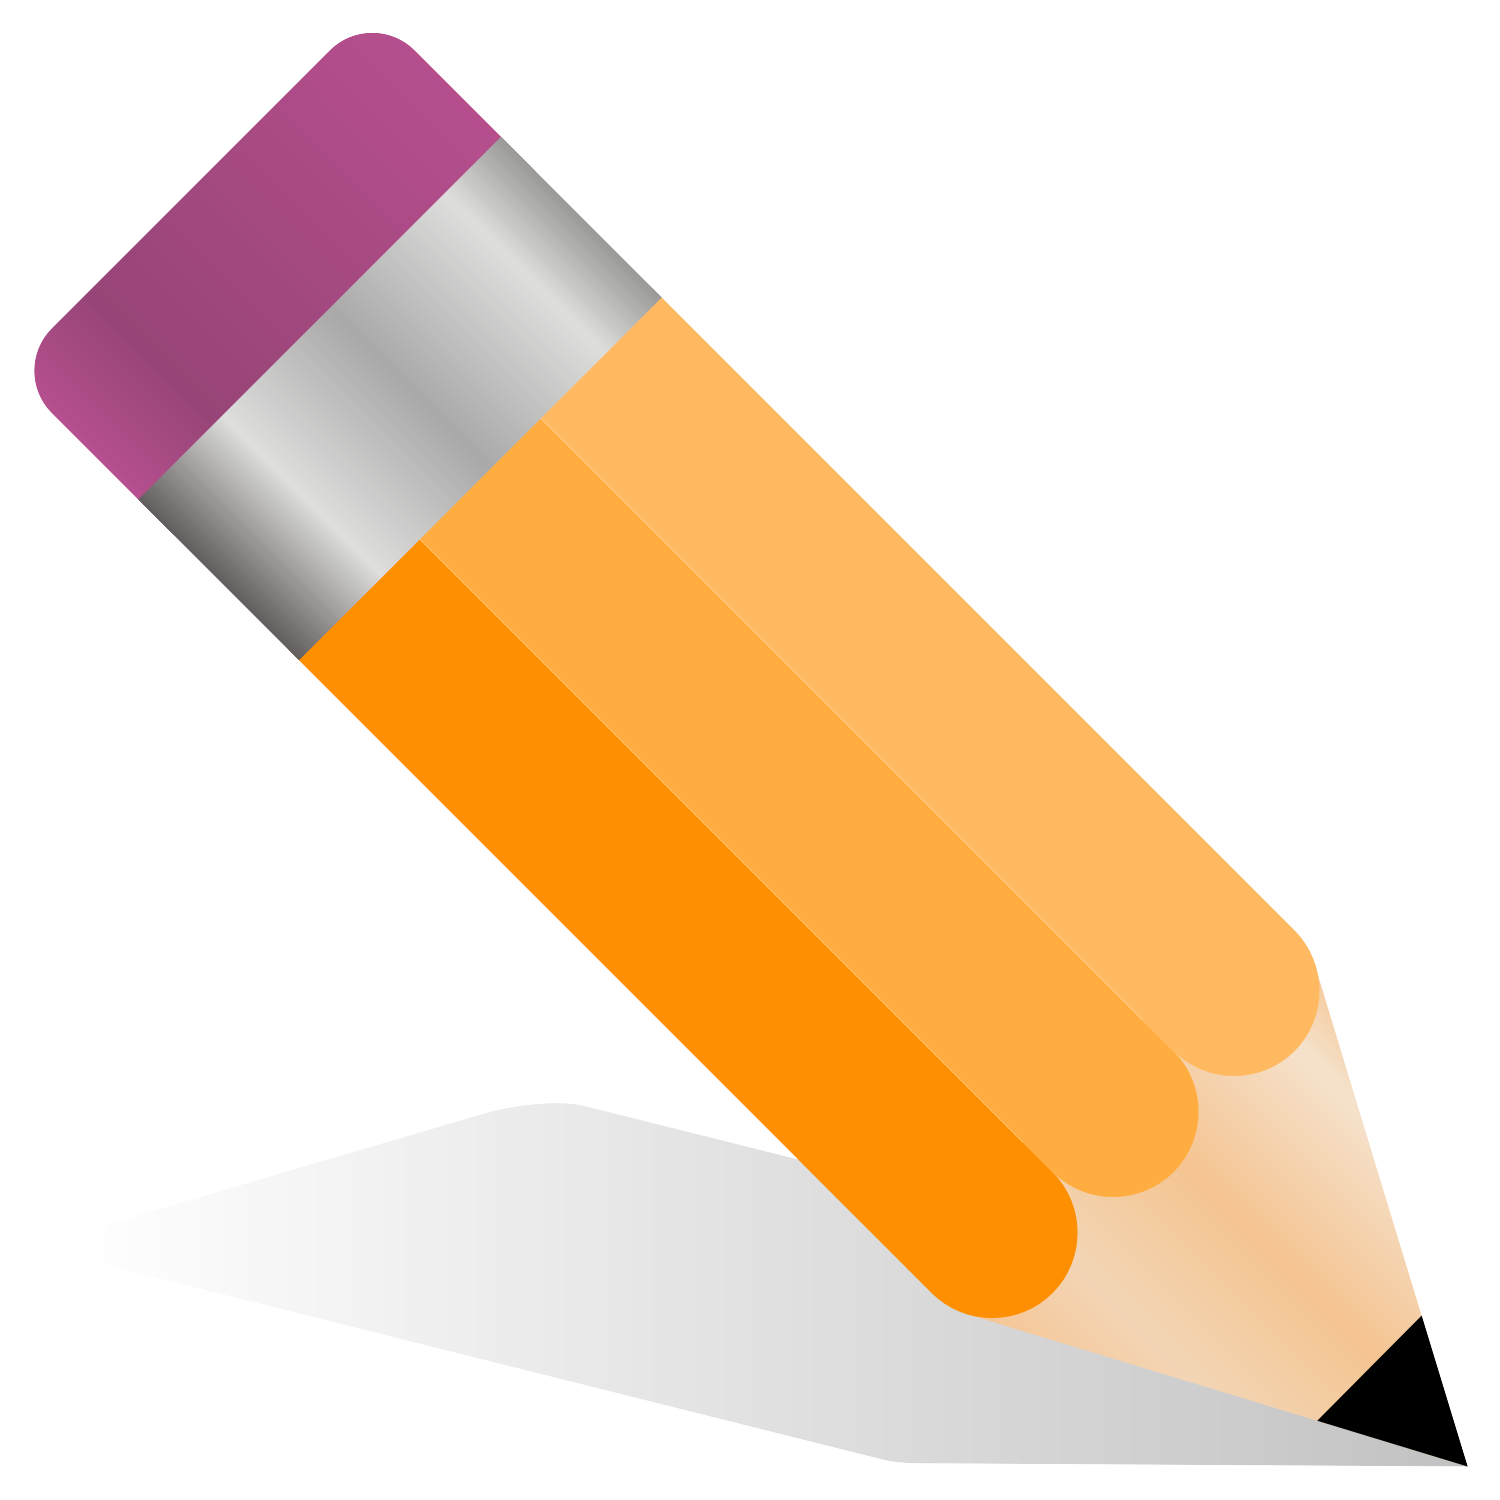 Vector illustration of a pencil.